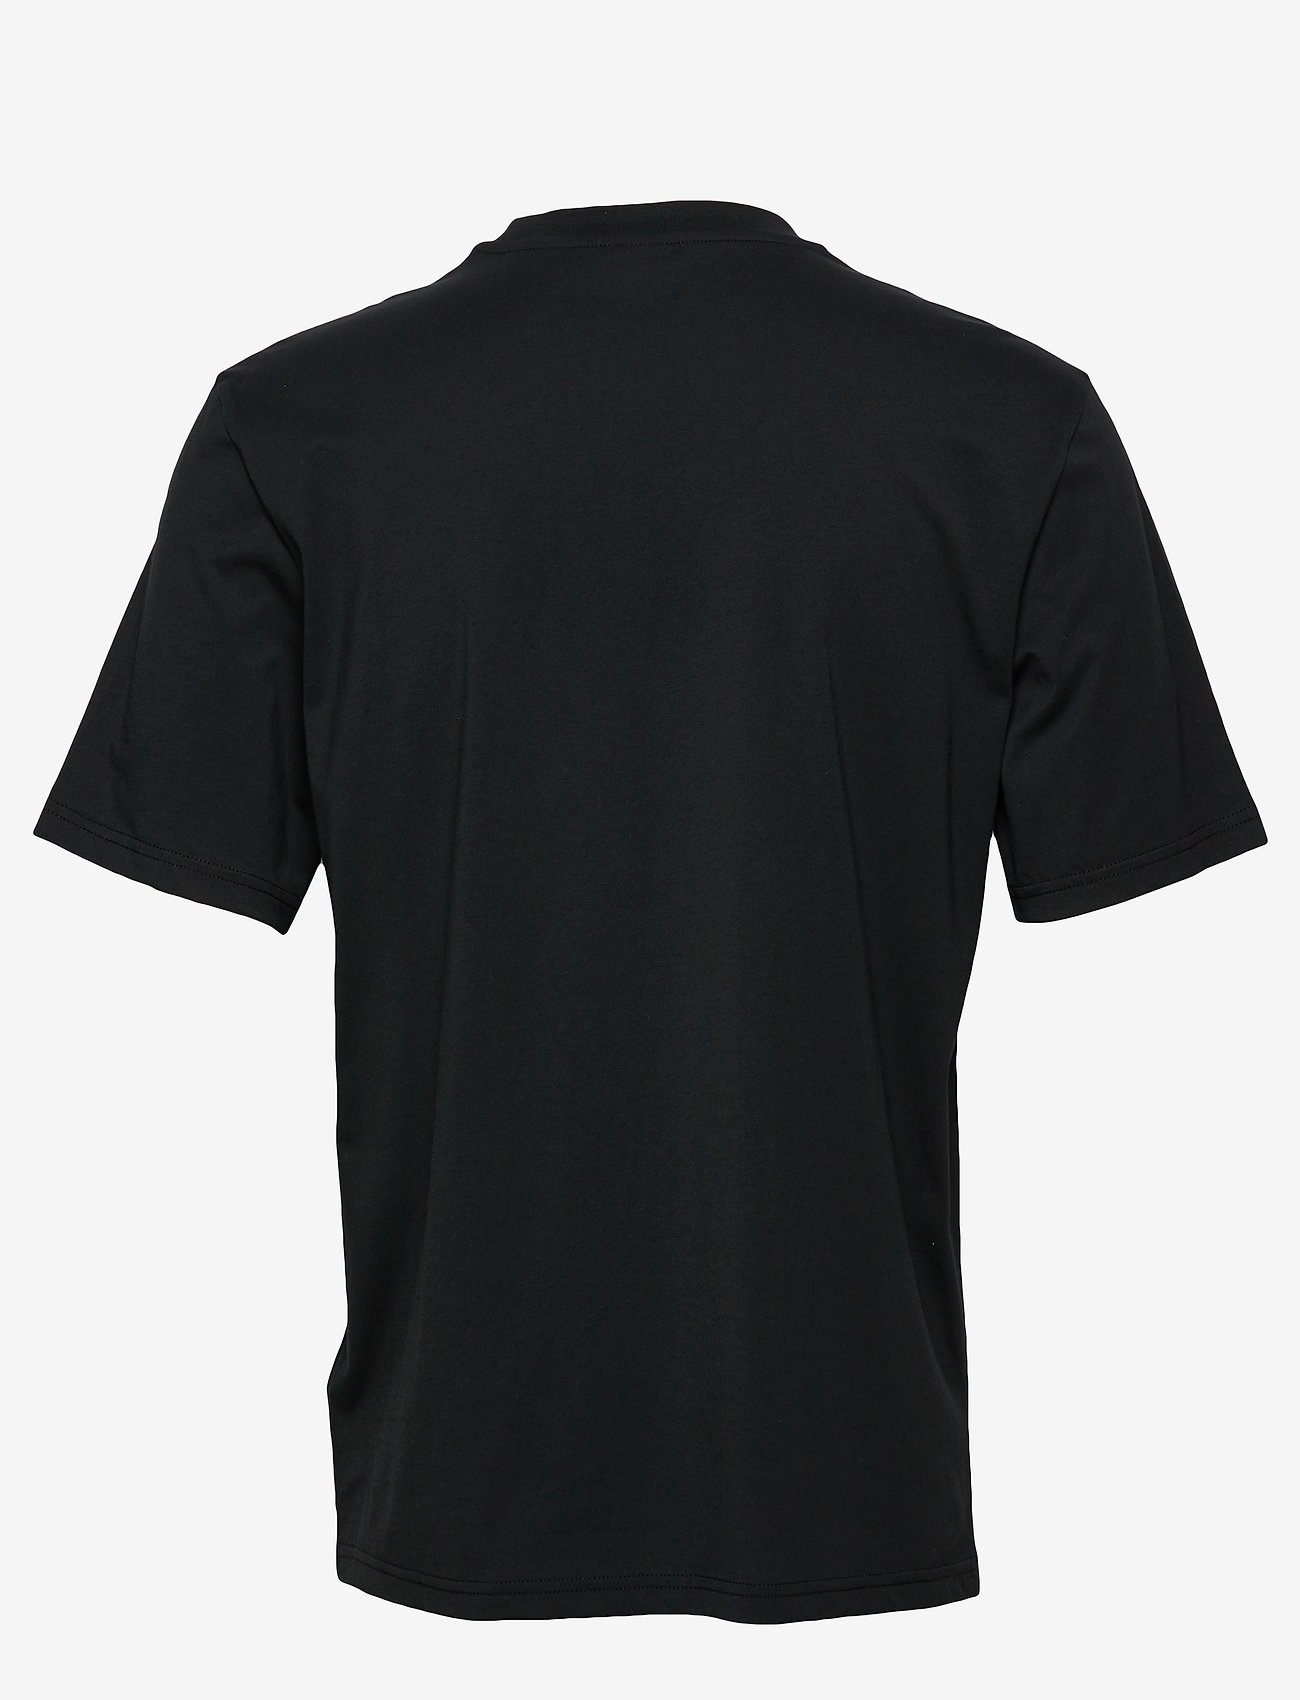 Dale-distinct Cotton (Black) - J. Lindeberg EEwfxz